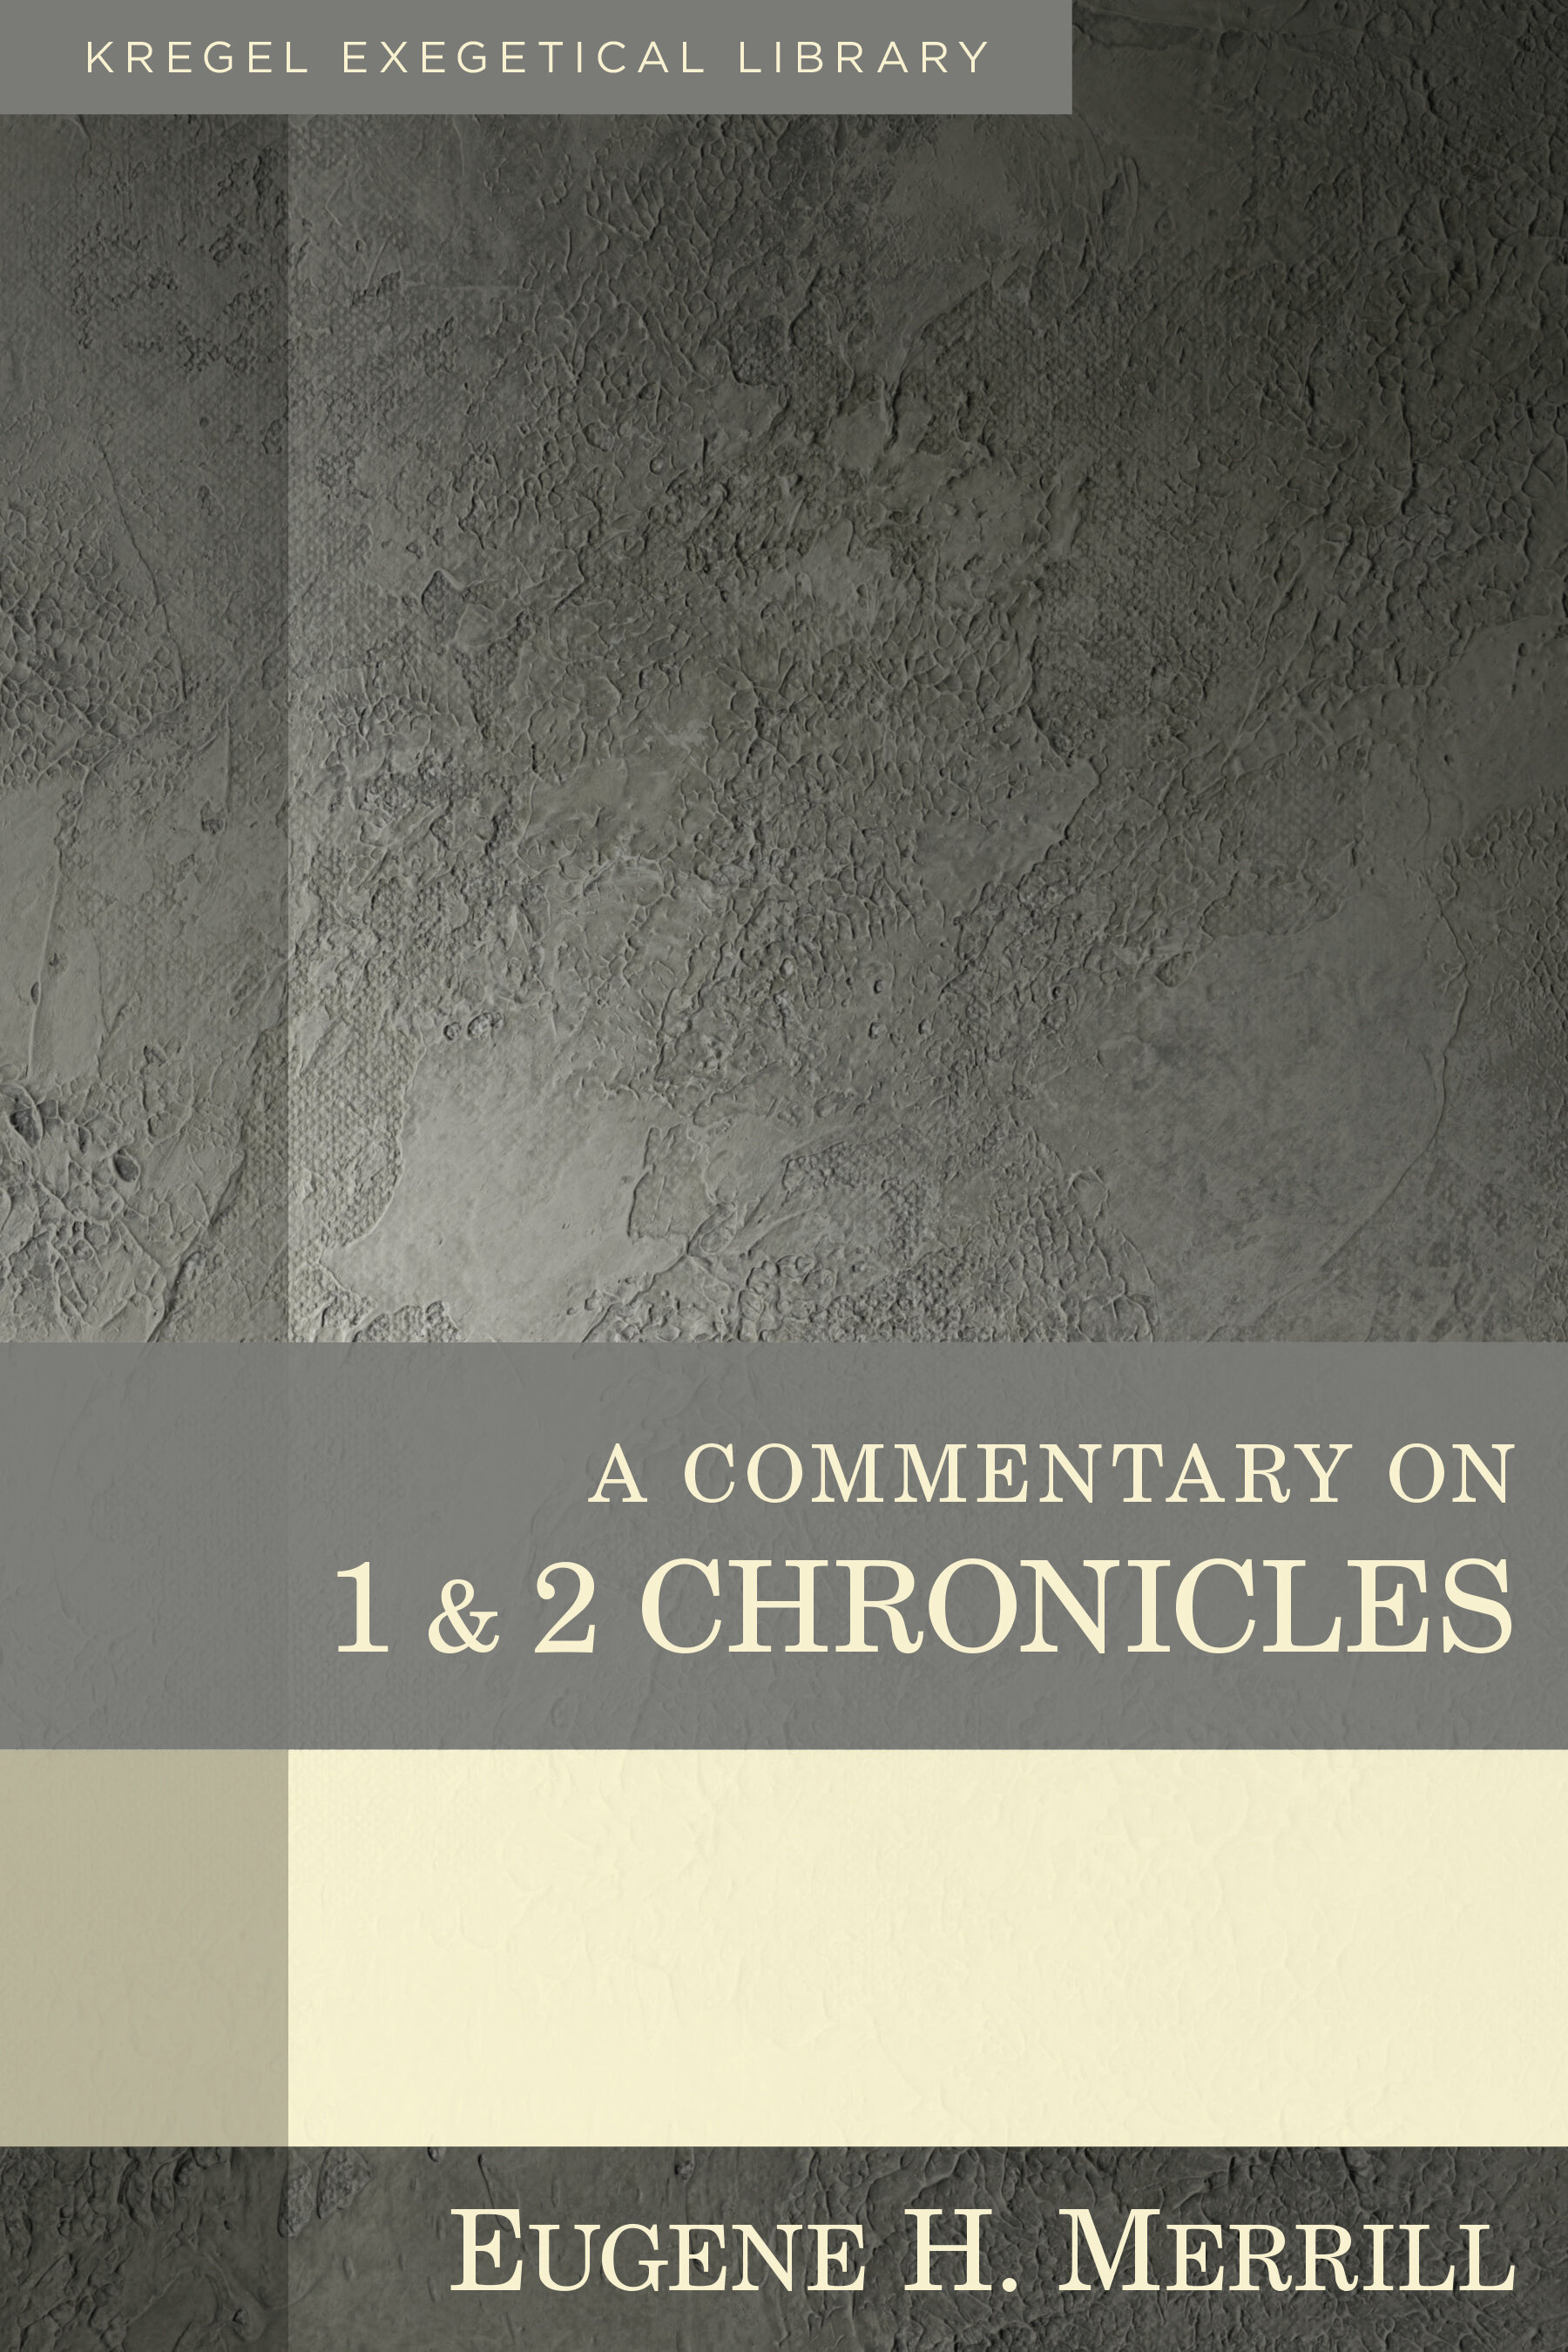 A Commentary on 1 & 2 Chronicles (Kregel Exegetical Library)